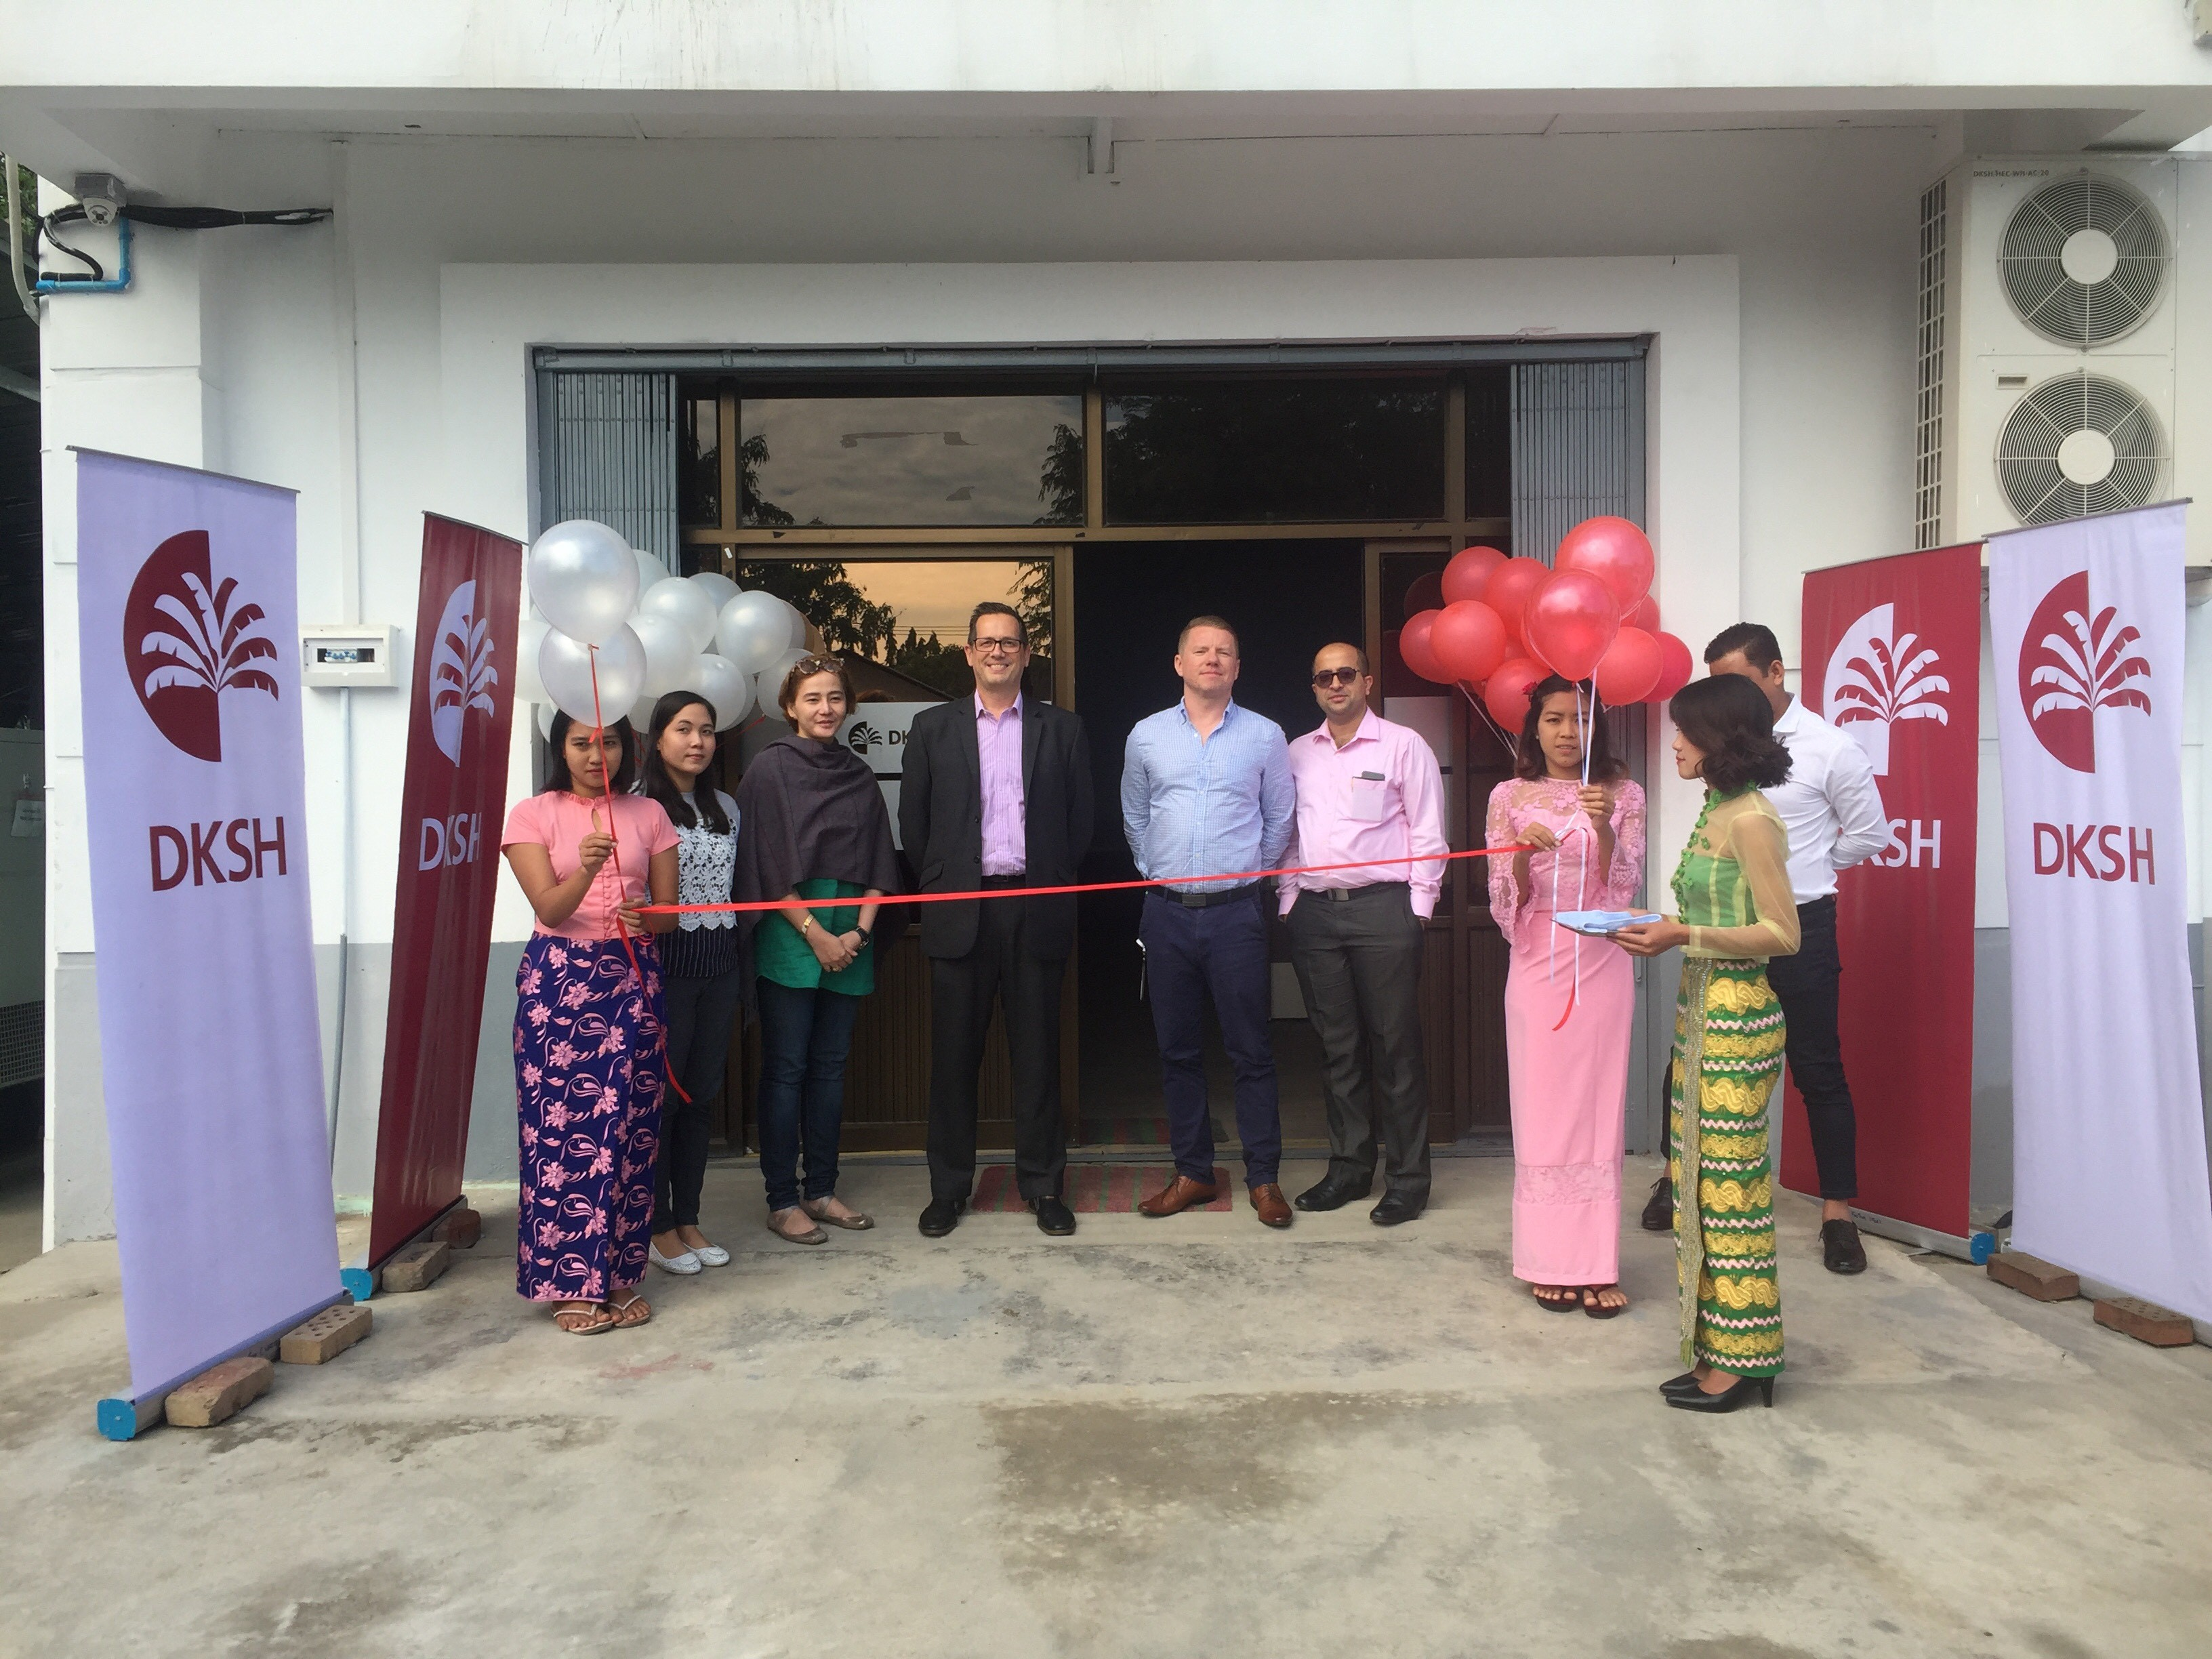 DKSH Myanmar expands cold chain distribution capabilities to Mandalay